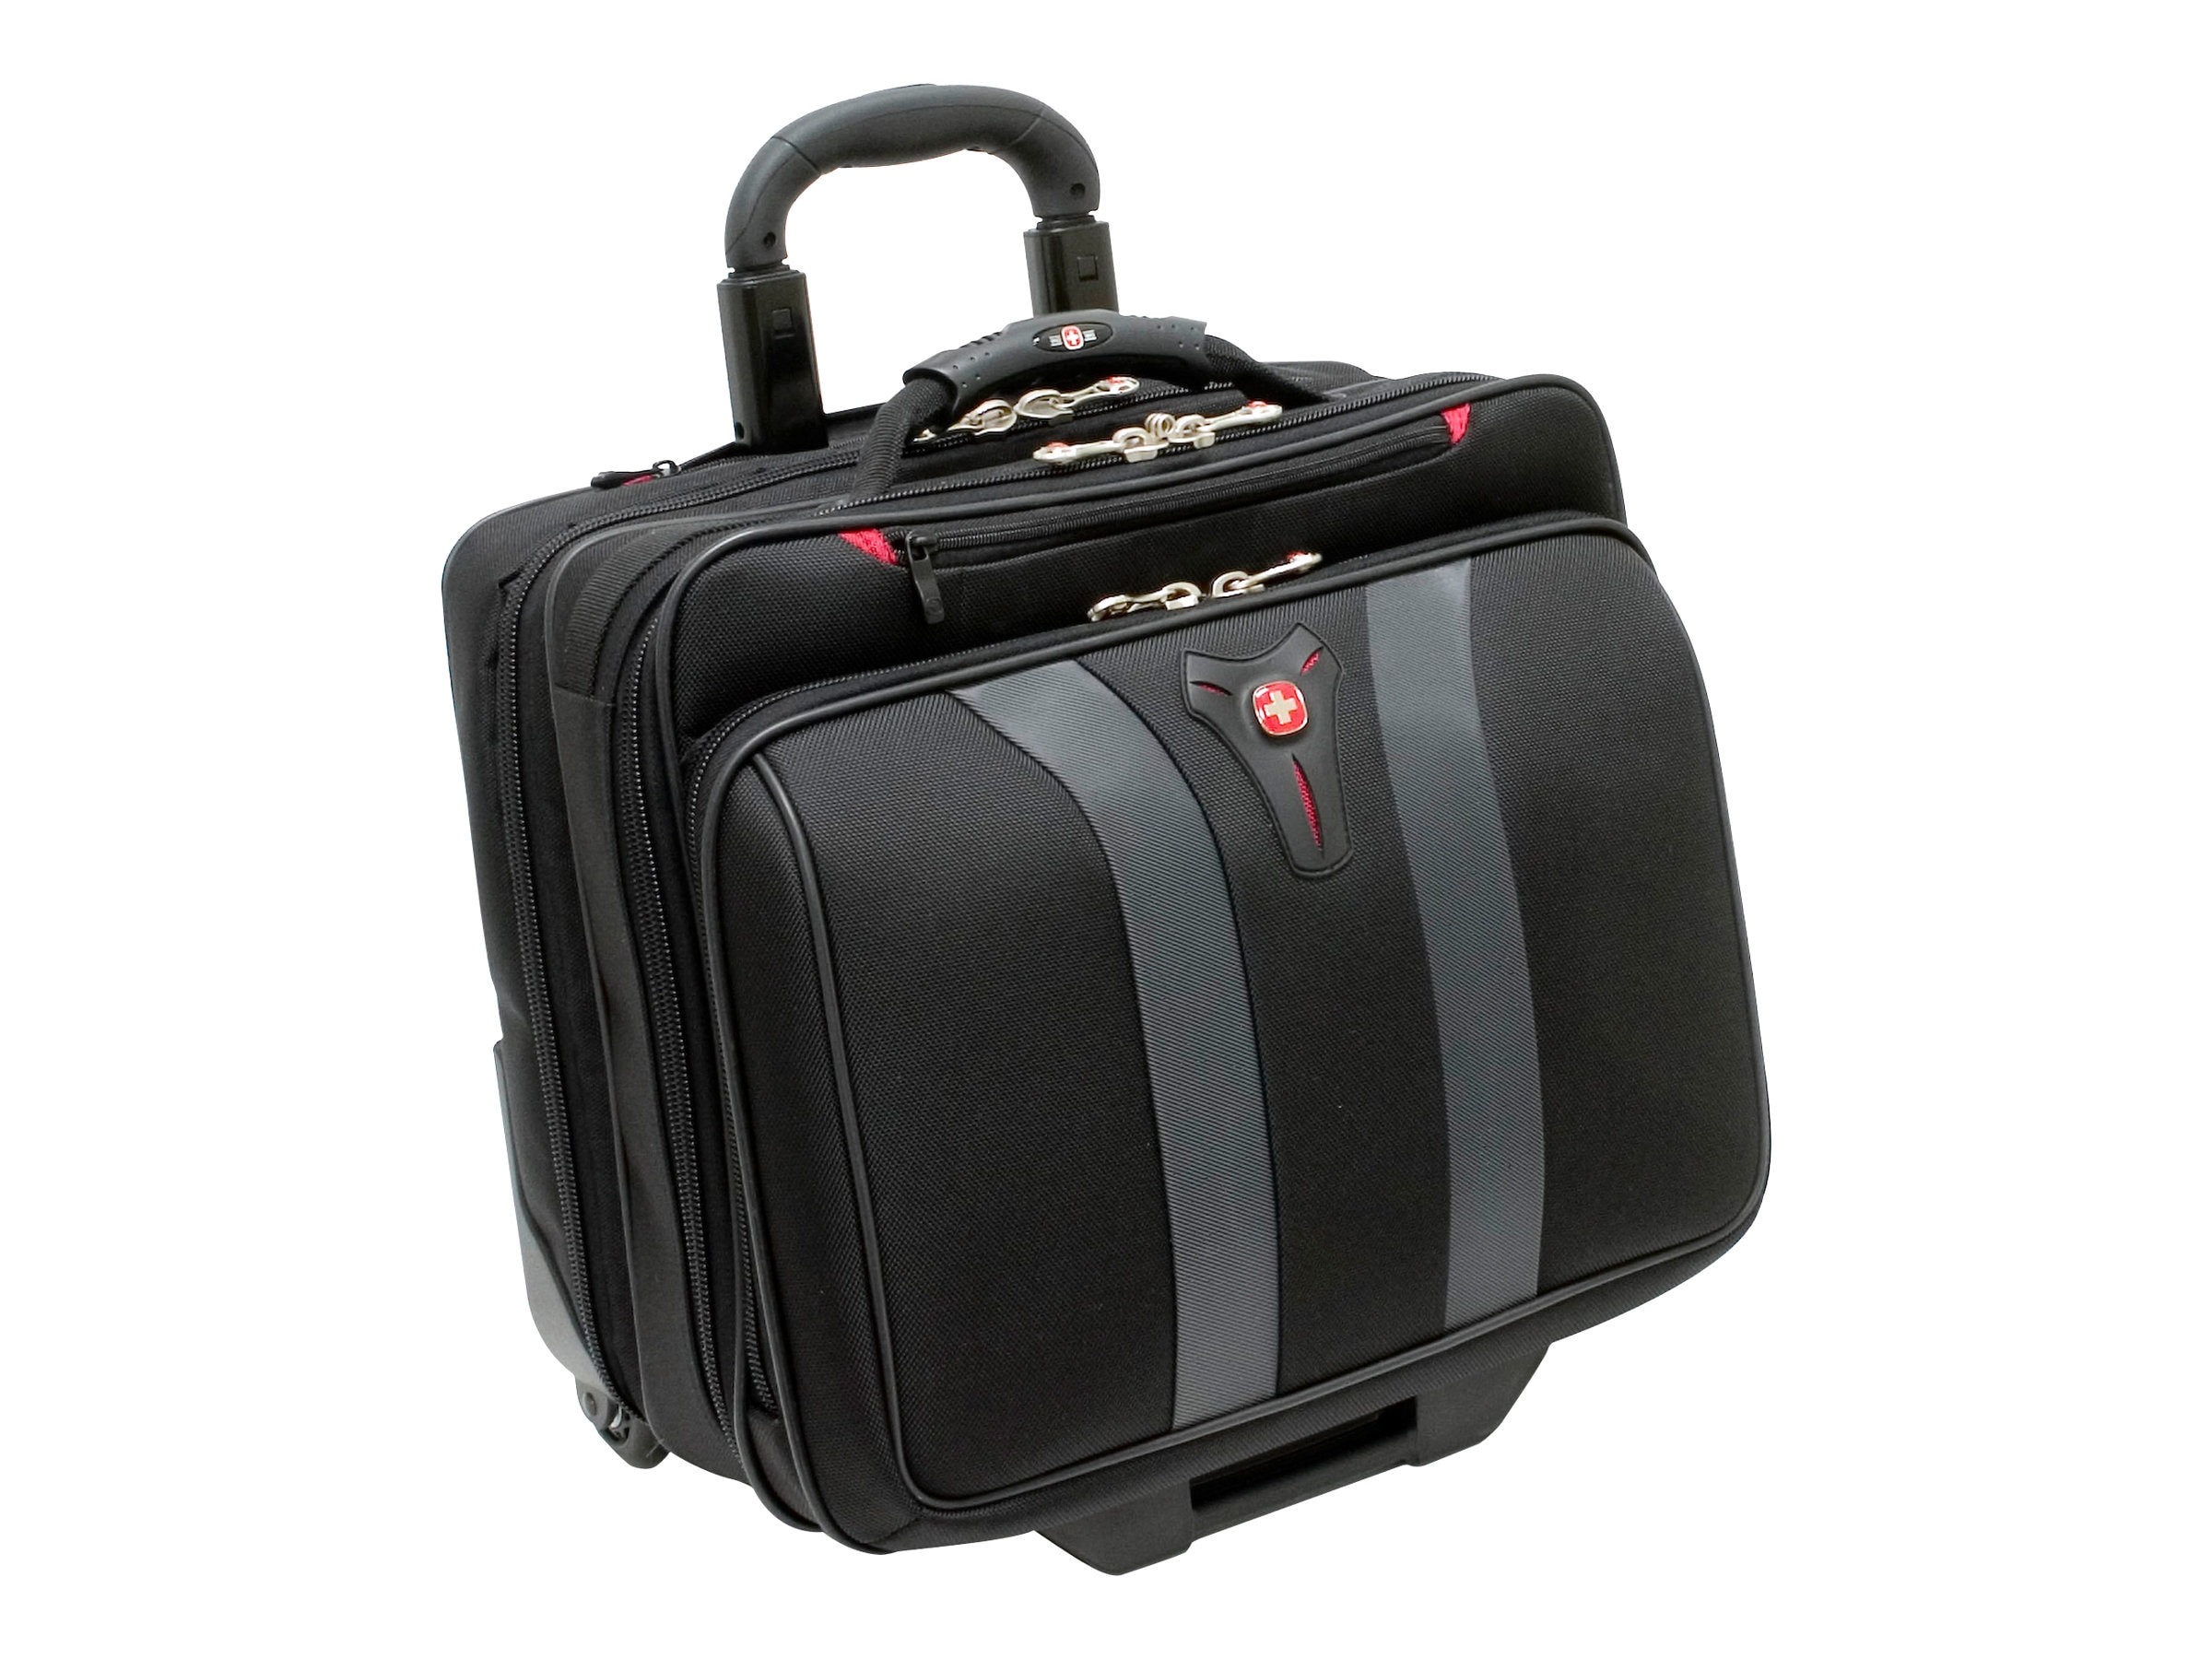 Wenger Wenger Swiss Gear Granada Wheeled Computer Case, GA-7011-14F00, 8040197, Carrying Cases - Notebook